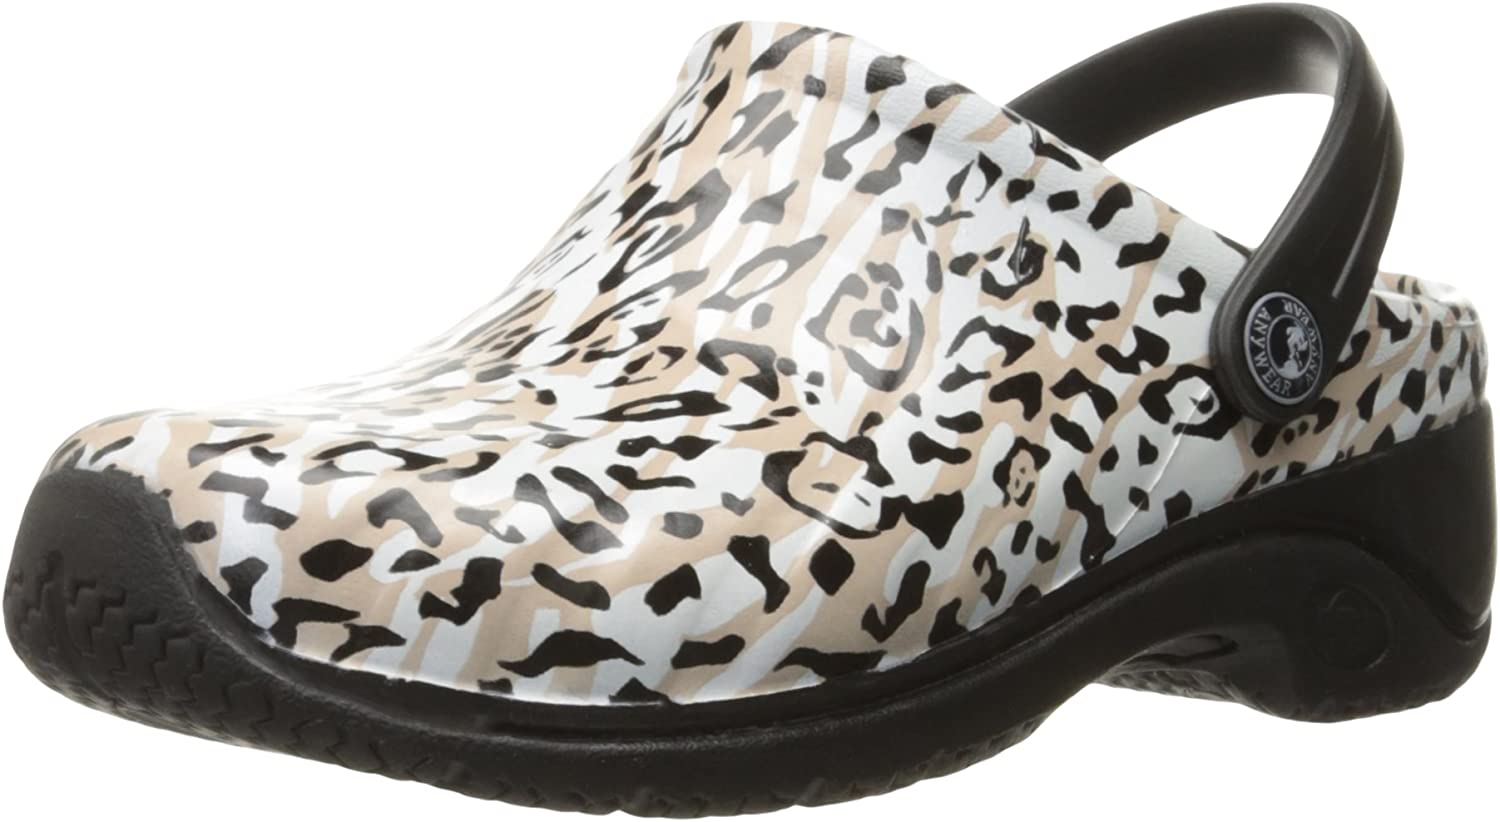 Anywear Women's Zone Health Care and Food Service shoes